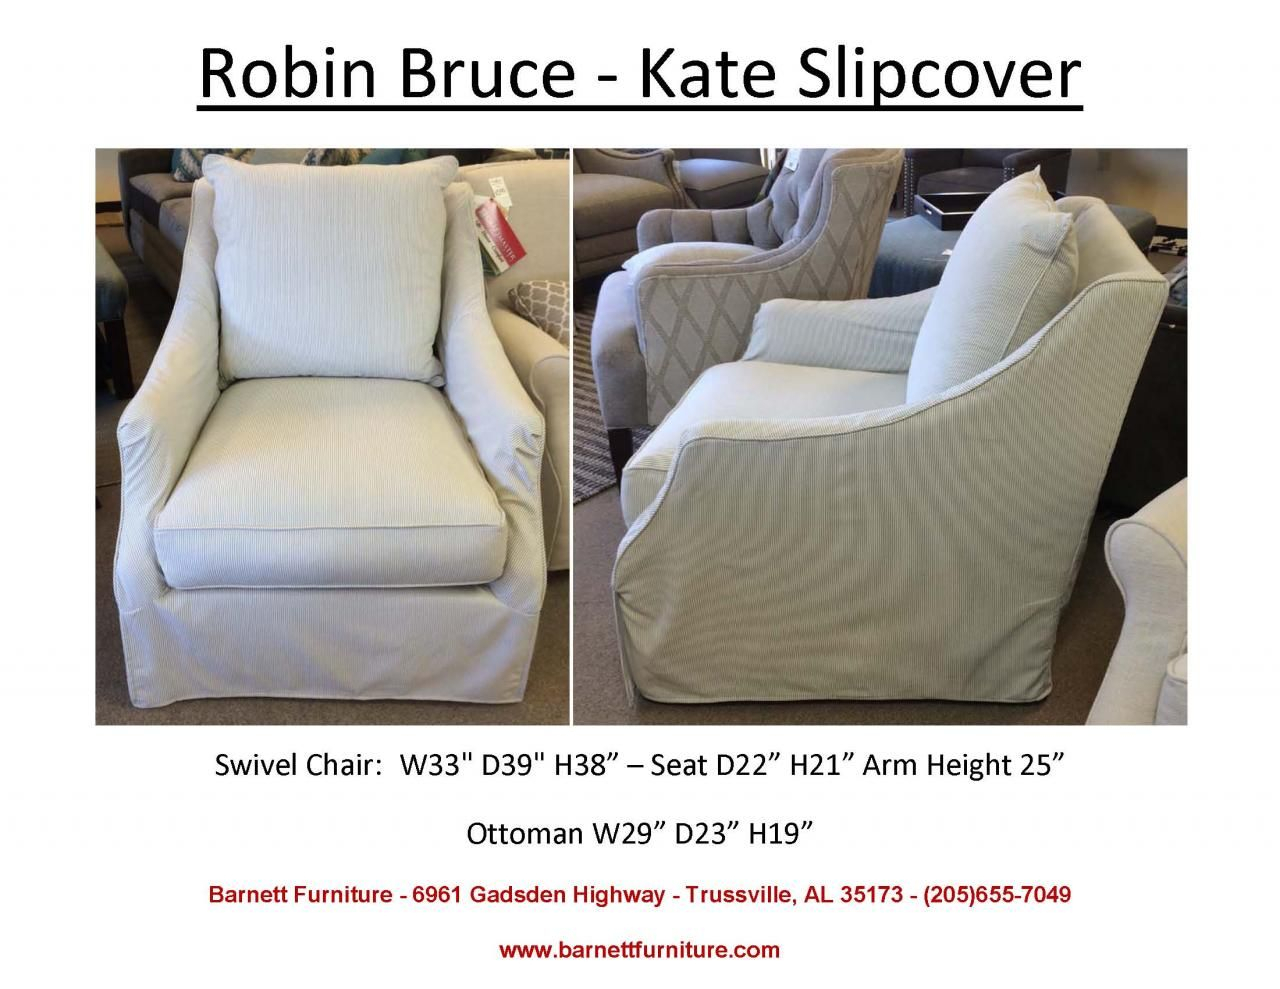 Robin Bruce Kate Slipcover Swivel Chair (Image 20 of 25)